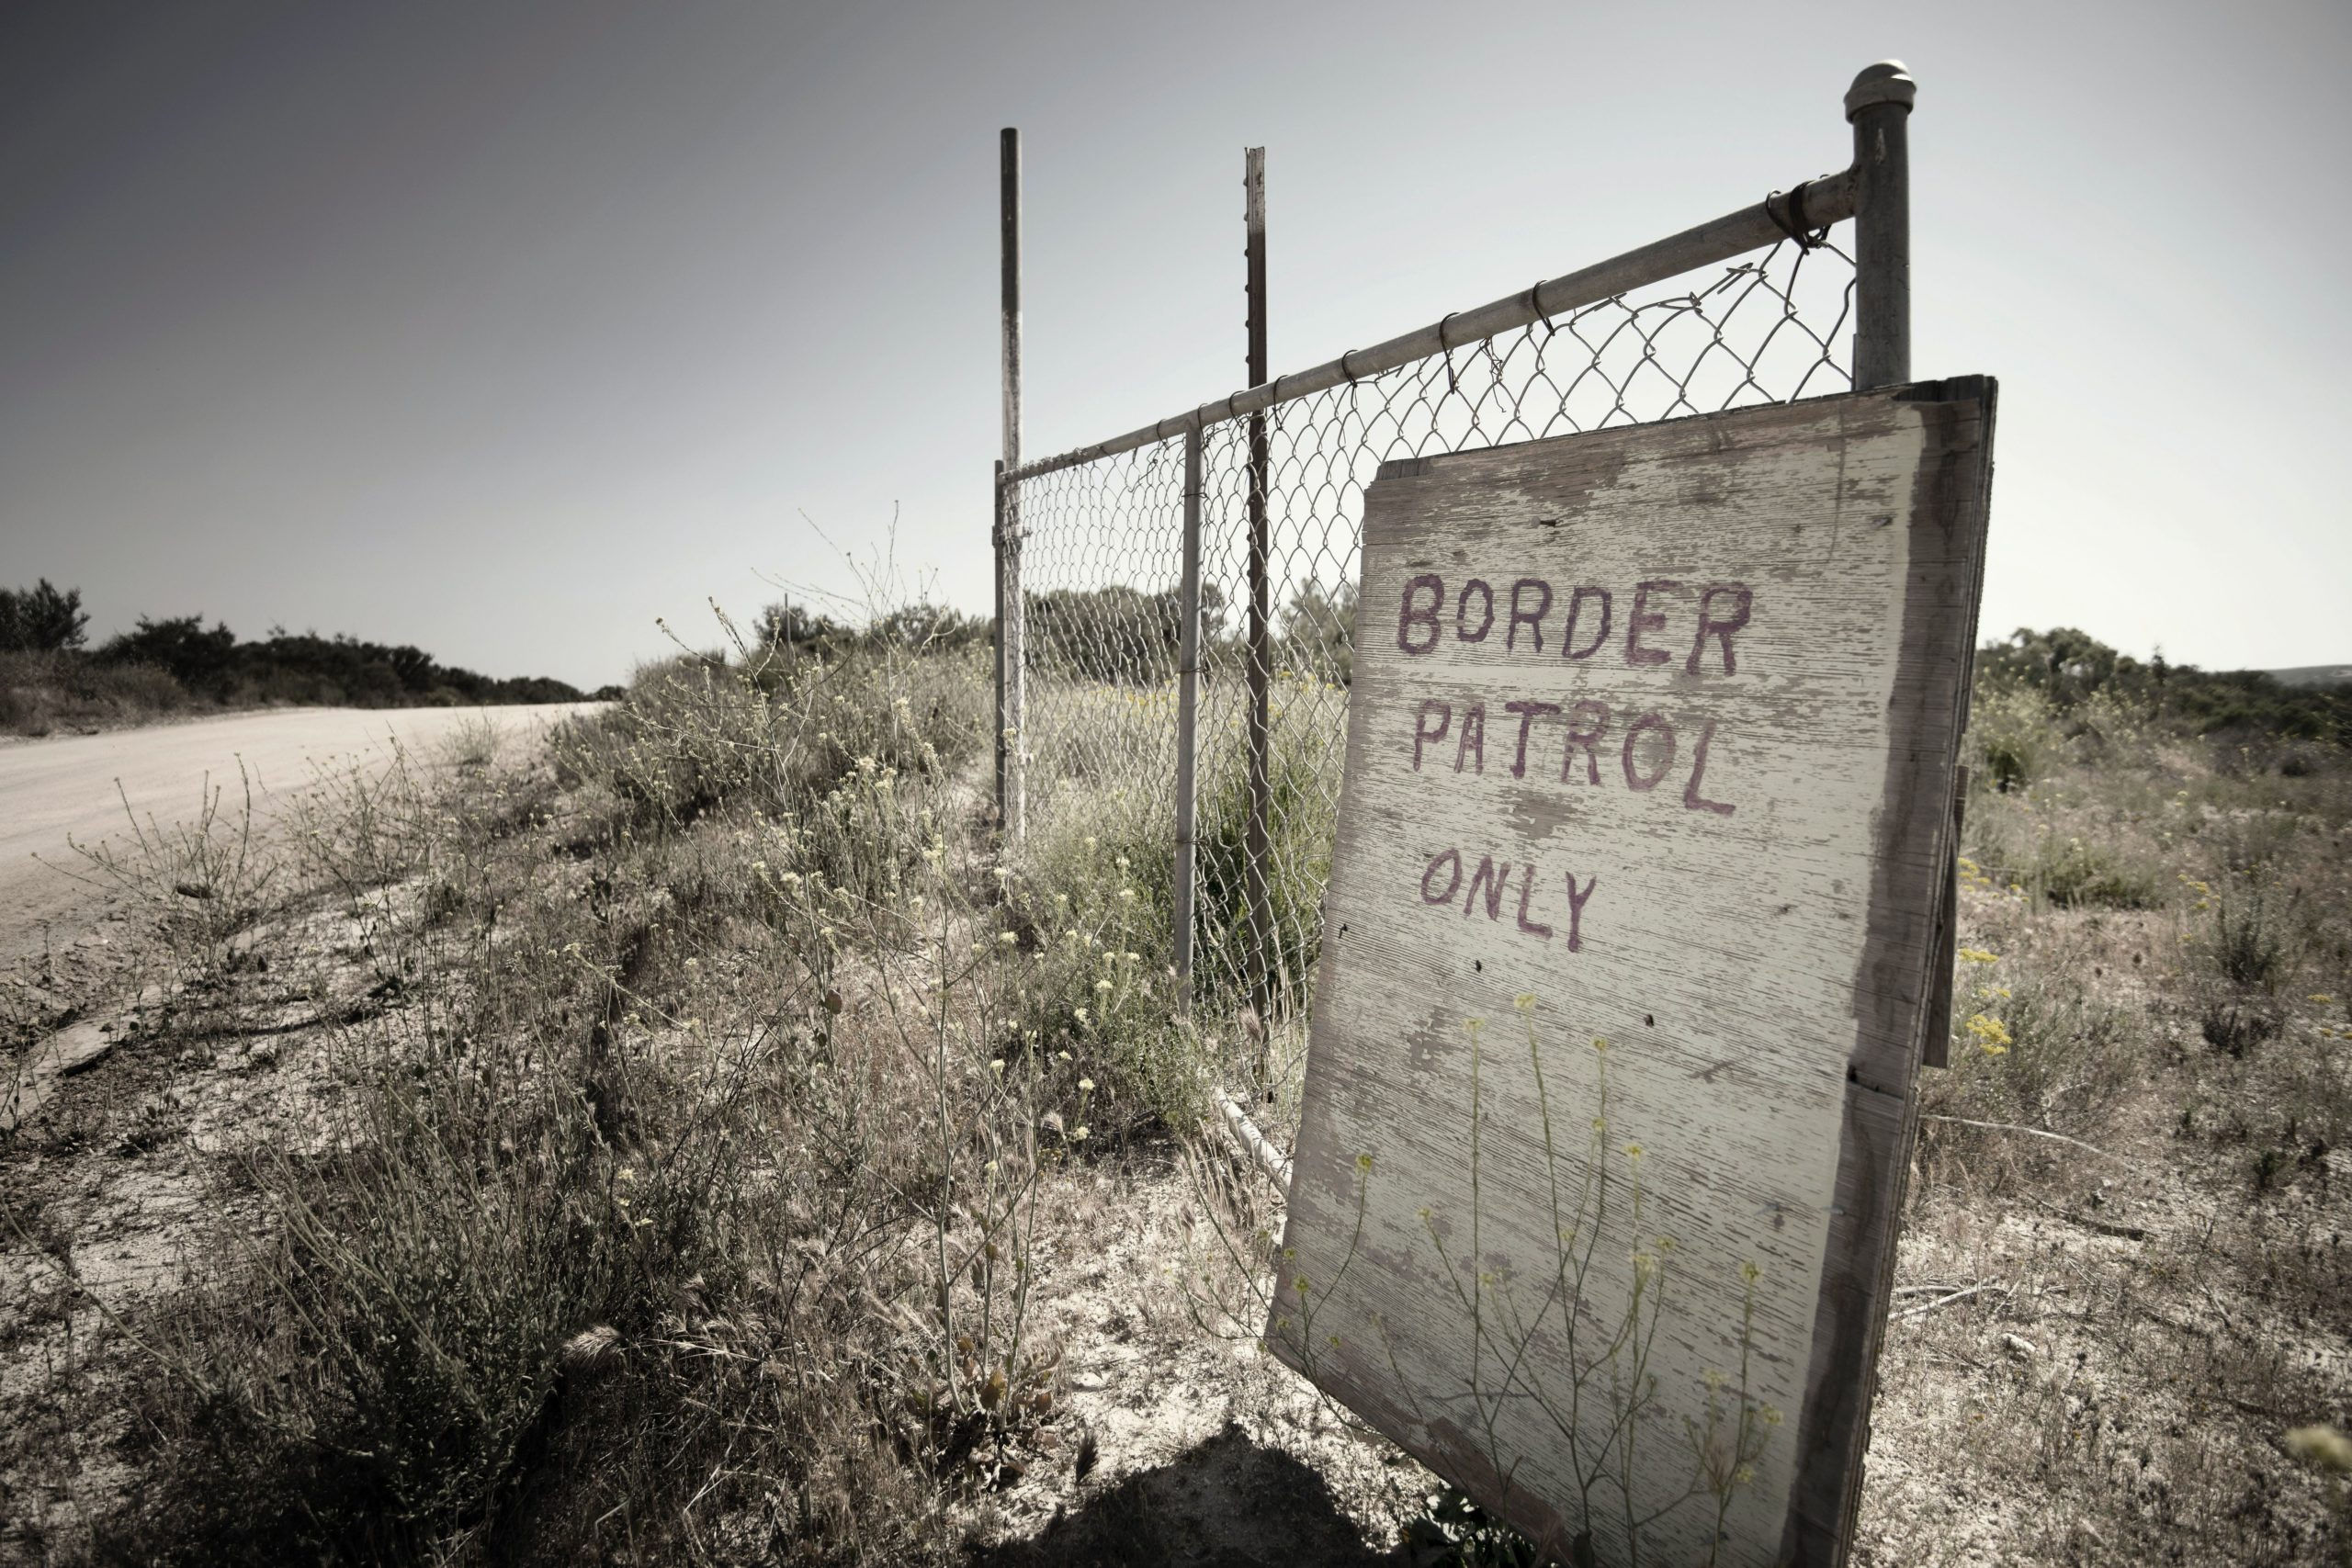 US Southern Border – Providing Access to Hygiene Products